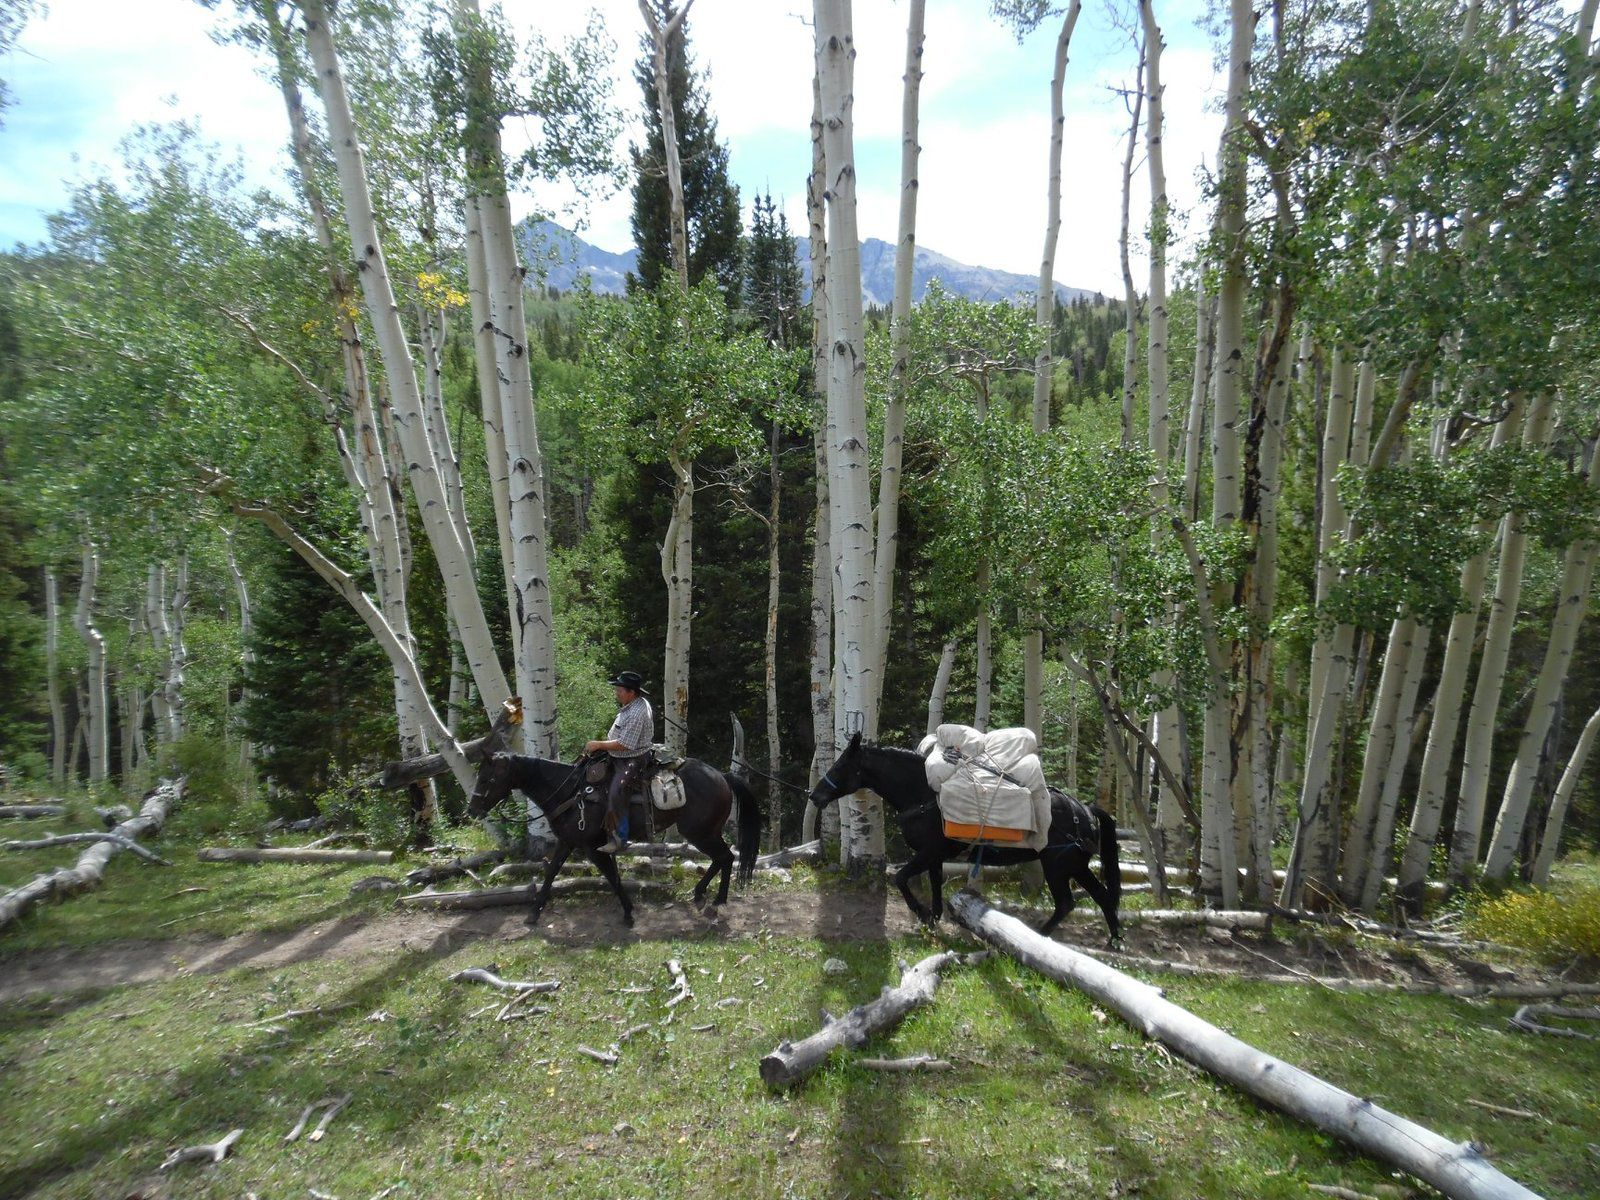 UTAH Horseback riding tour and vacations with Shane Stratton